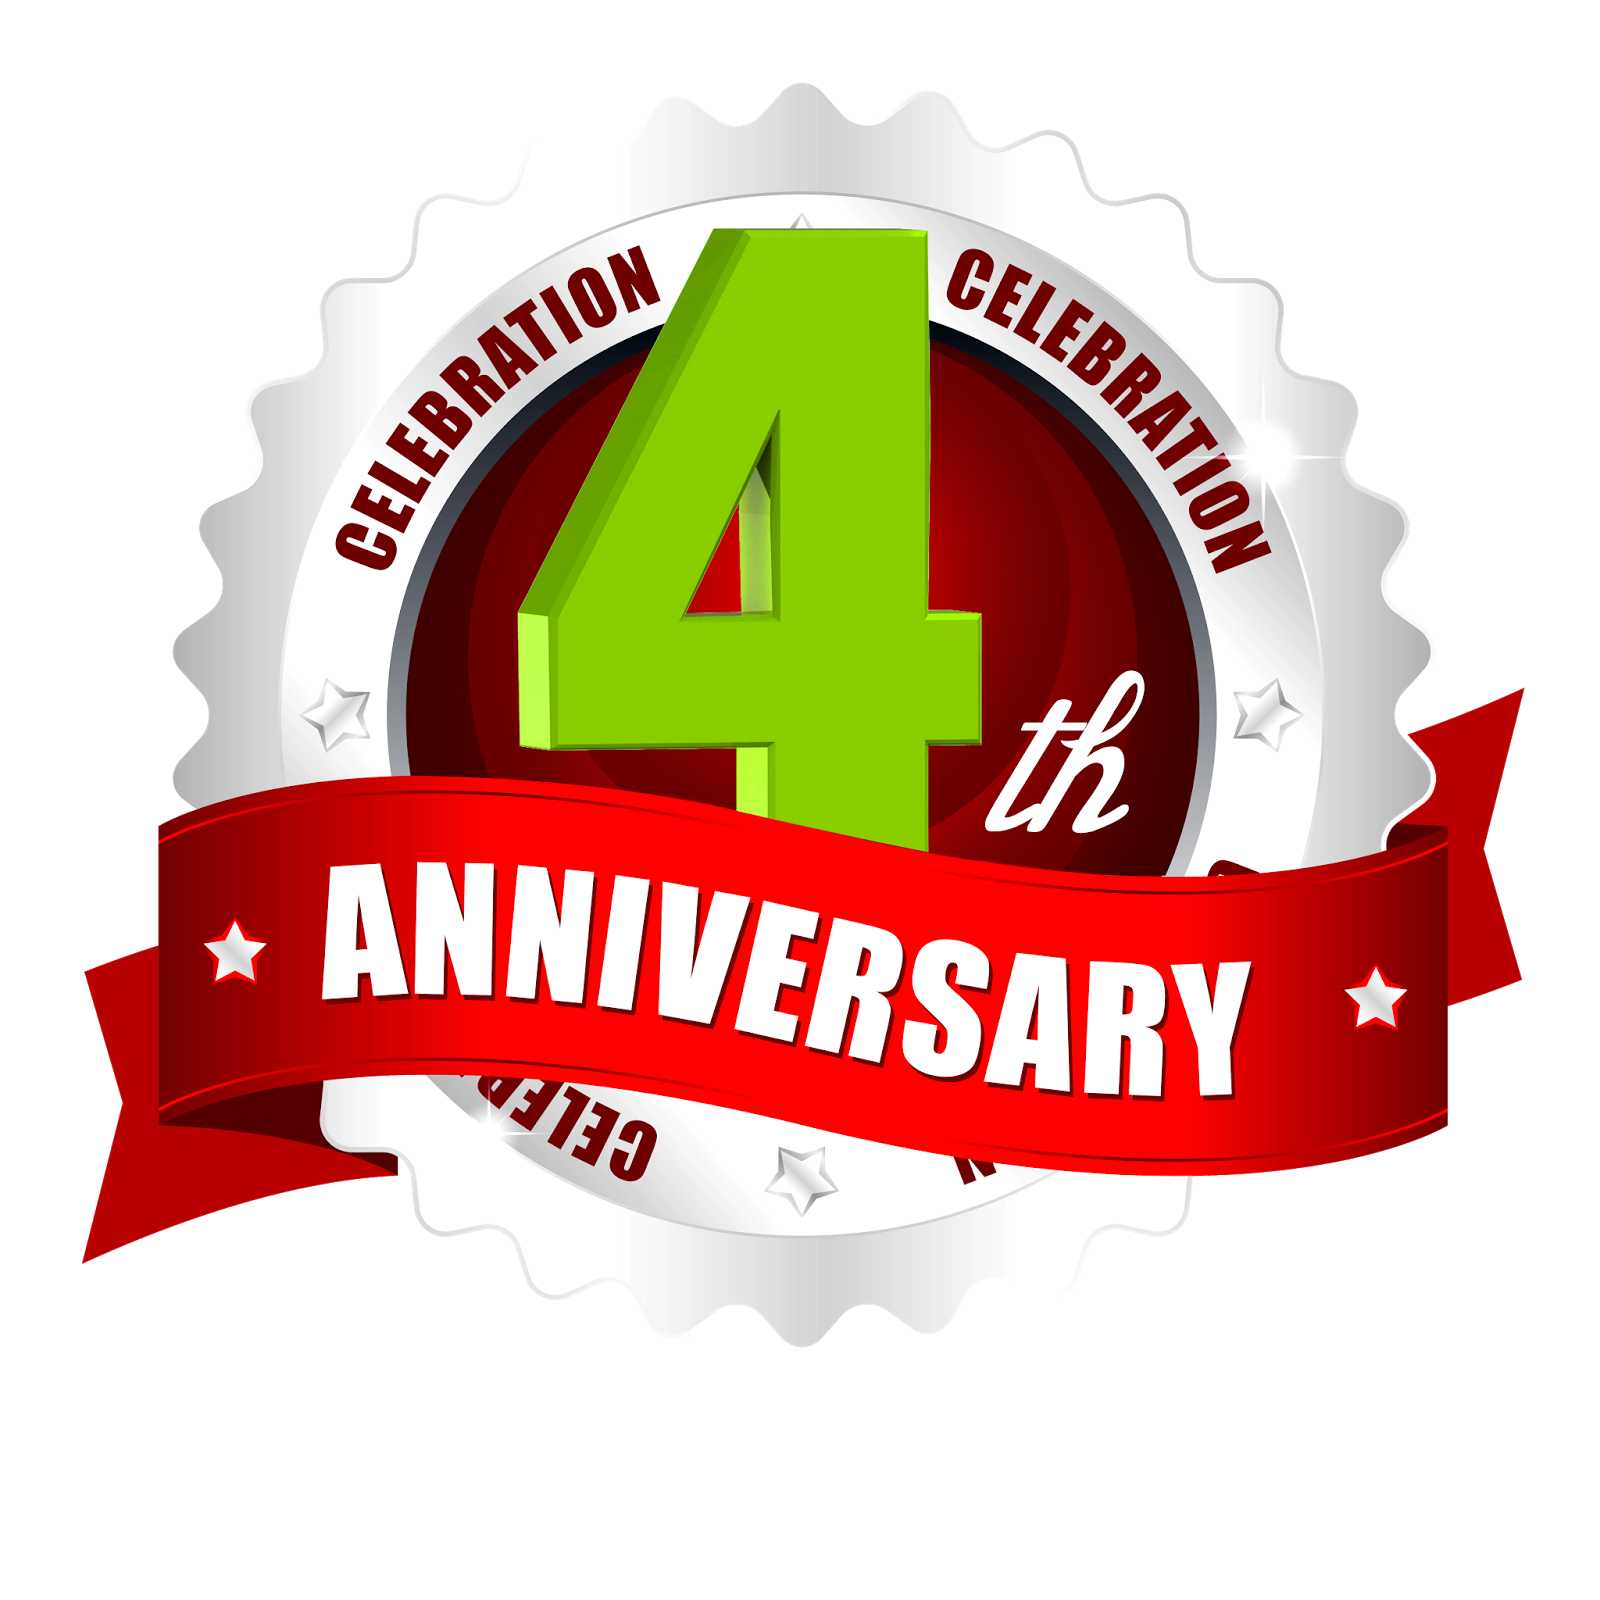 Th anniversary year vector logo and images in png naveengfx